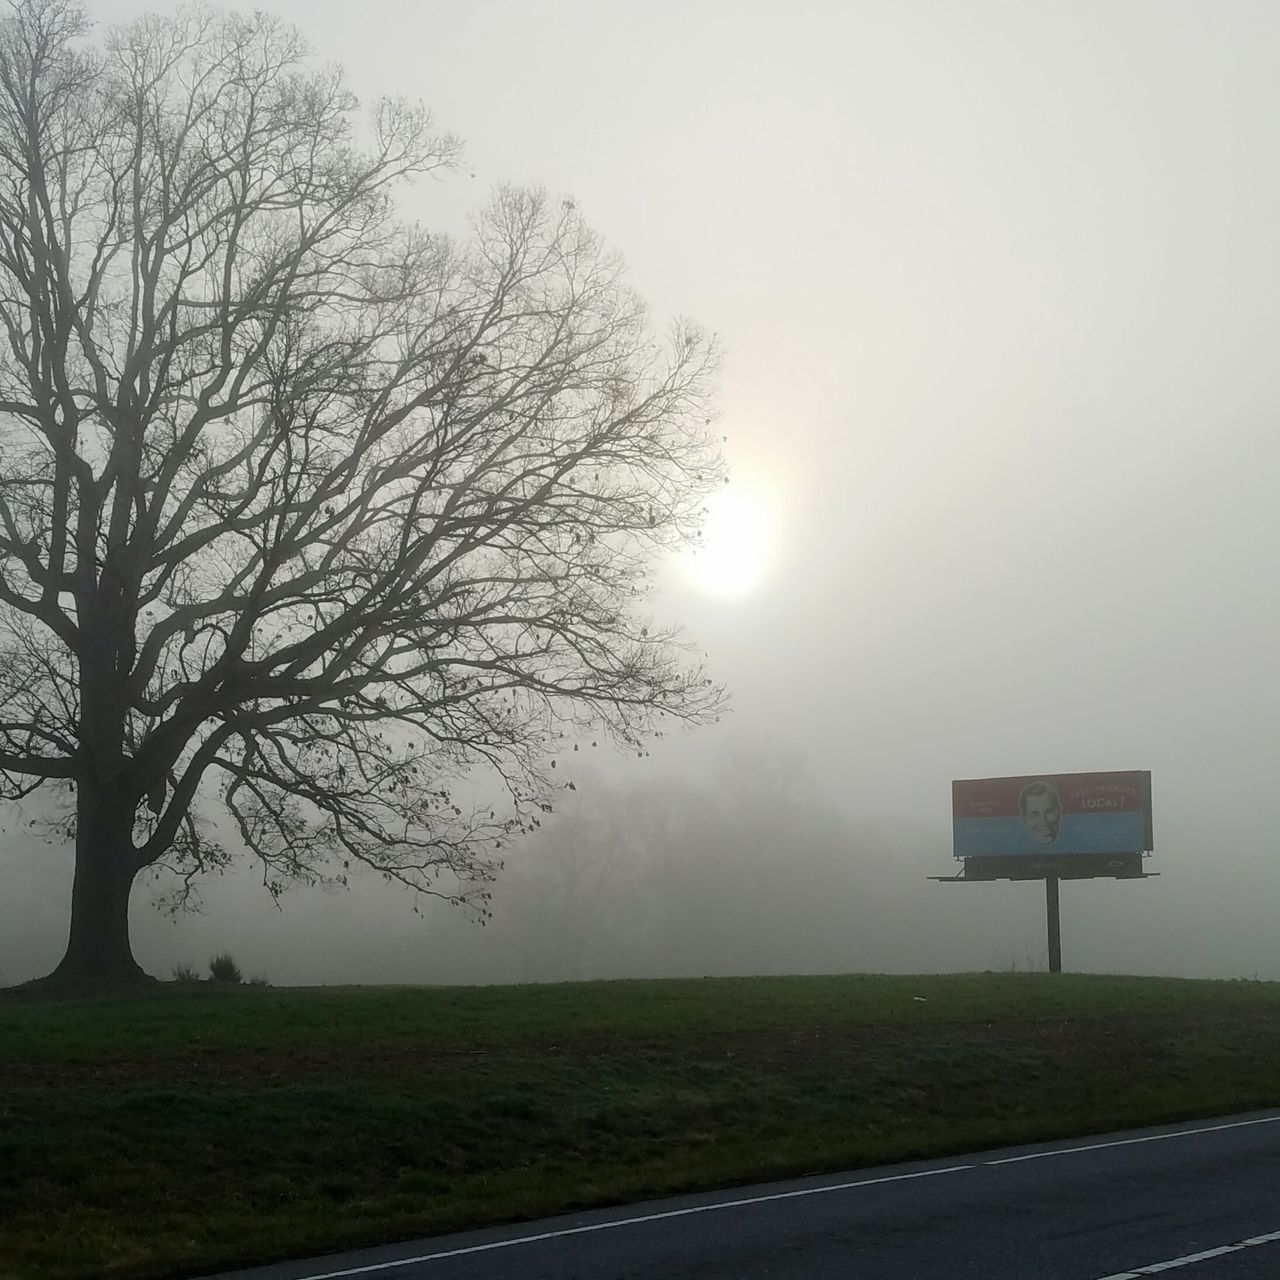 Tree Sun Local Sign Tree Sun Sunny Sunshine Sunthroughtrees Sunthroughclouds Bright Sign Local NC Country Minimalism Sky Grass Green Road Fog Foggy Driving Branches Branches And Sky Leaves Morning Beautiful No People